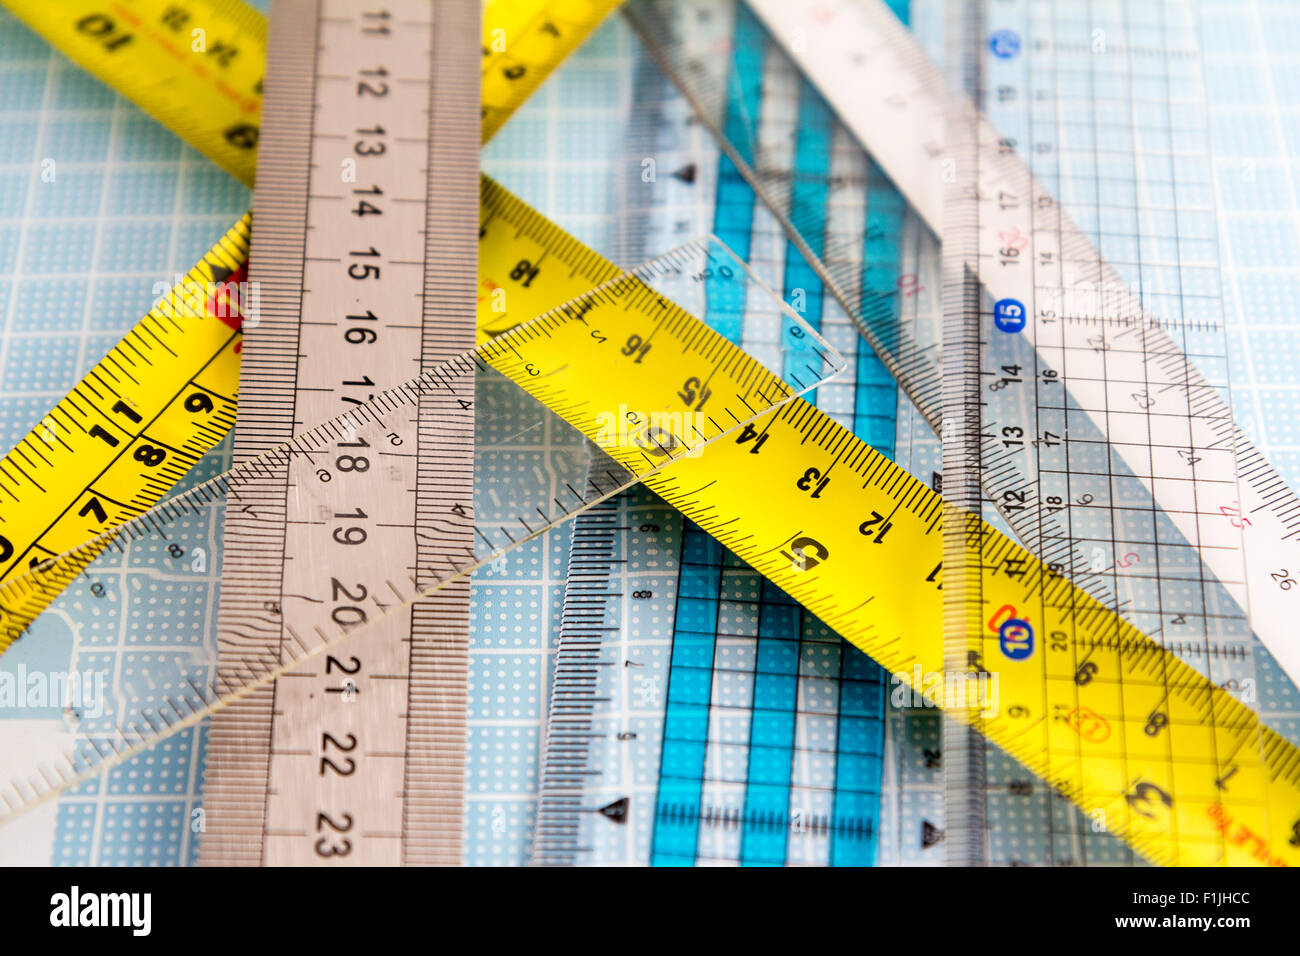 Rulers. Various types, transparetn, plastic, metal, laid out on pale blue measuring grid board - Stock Image